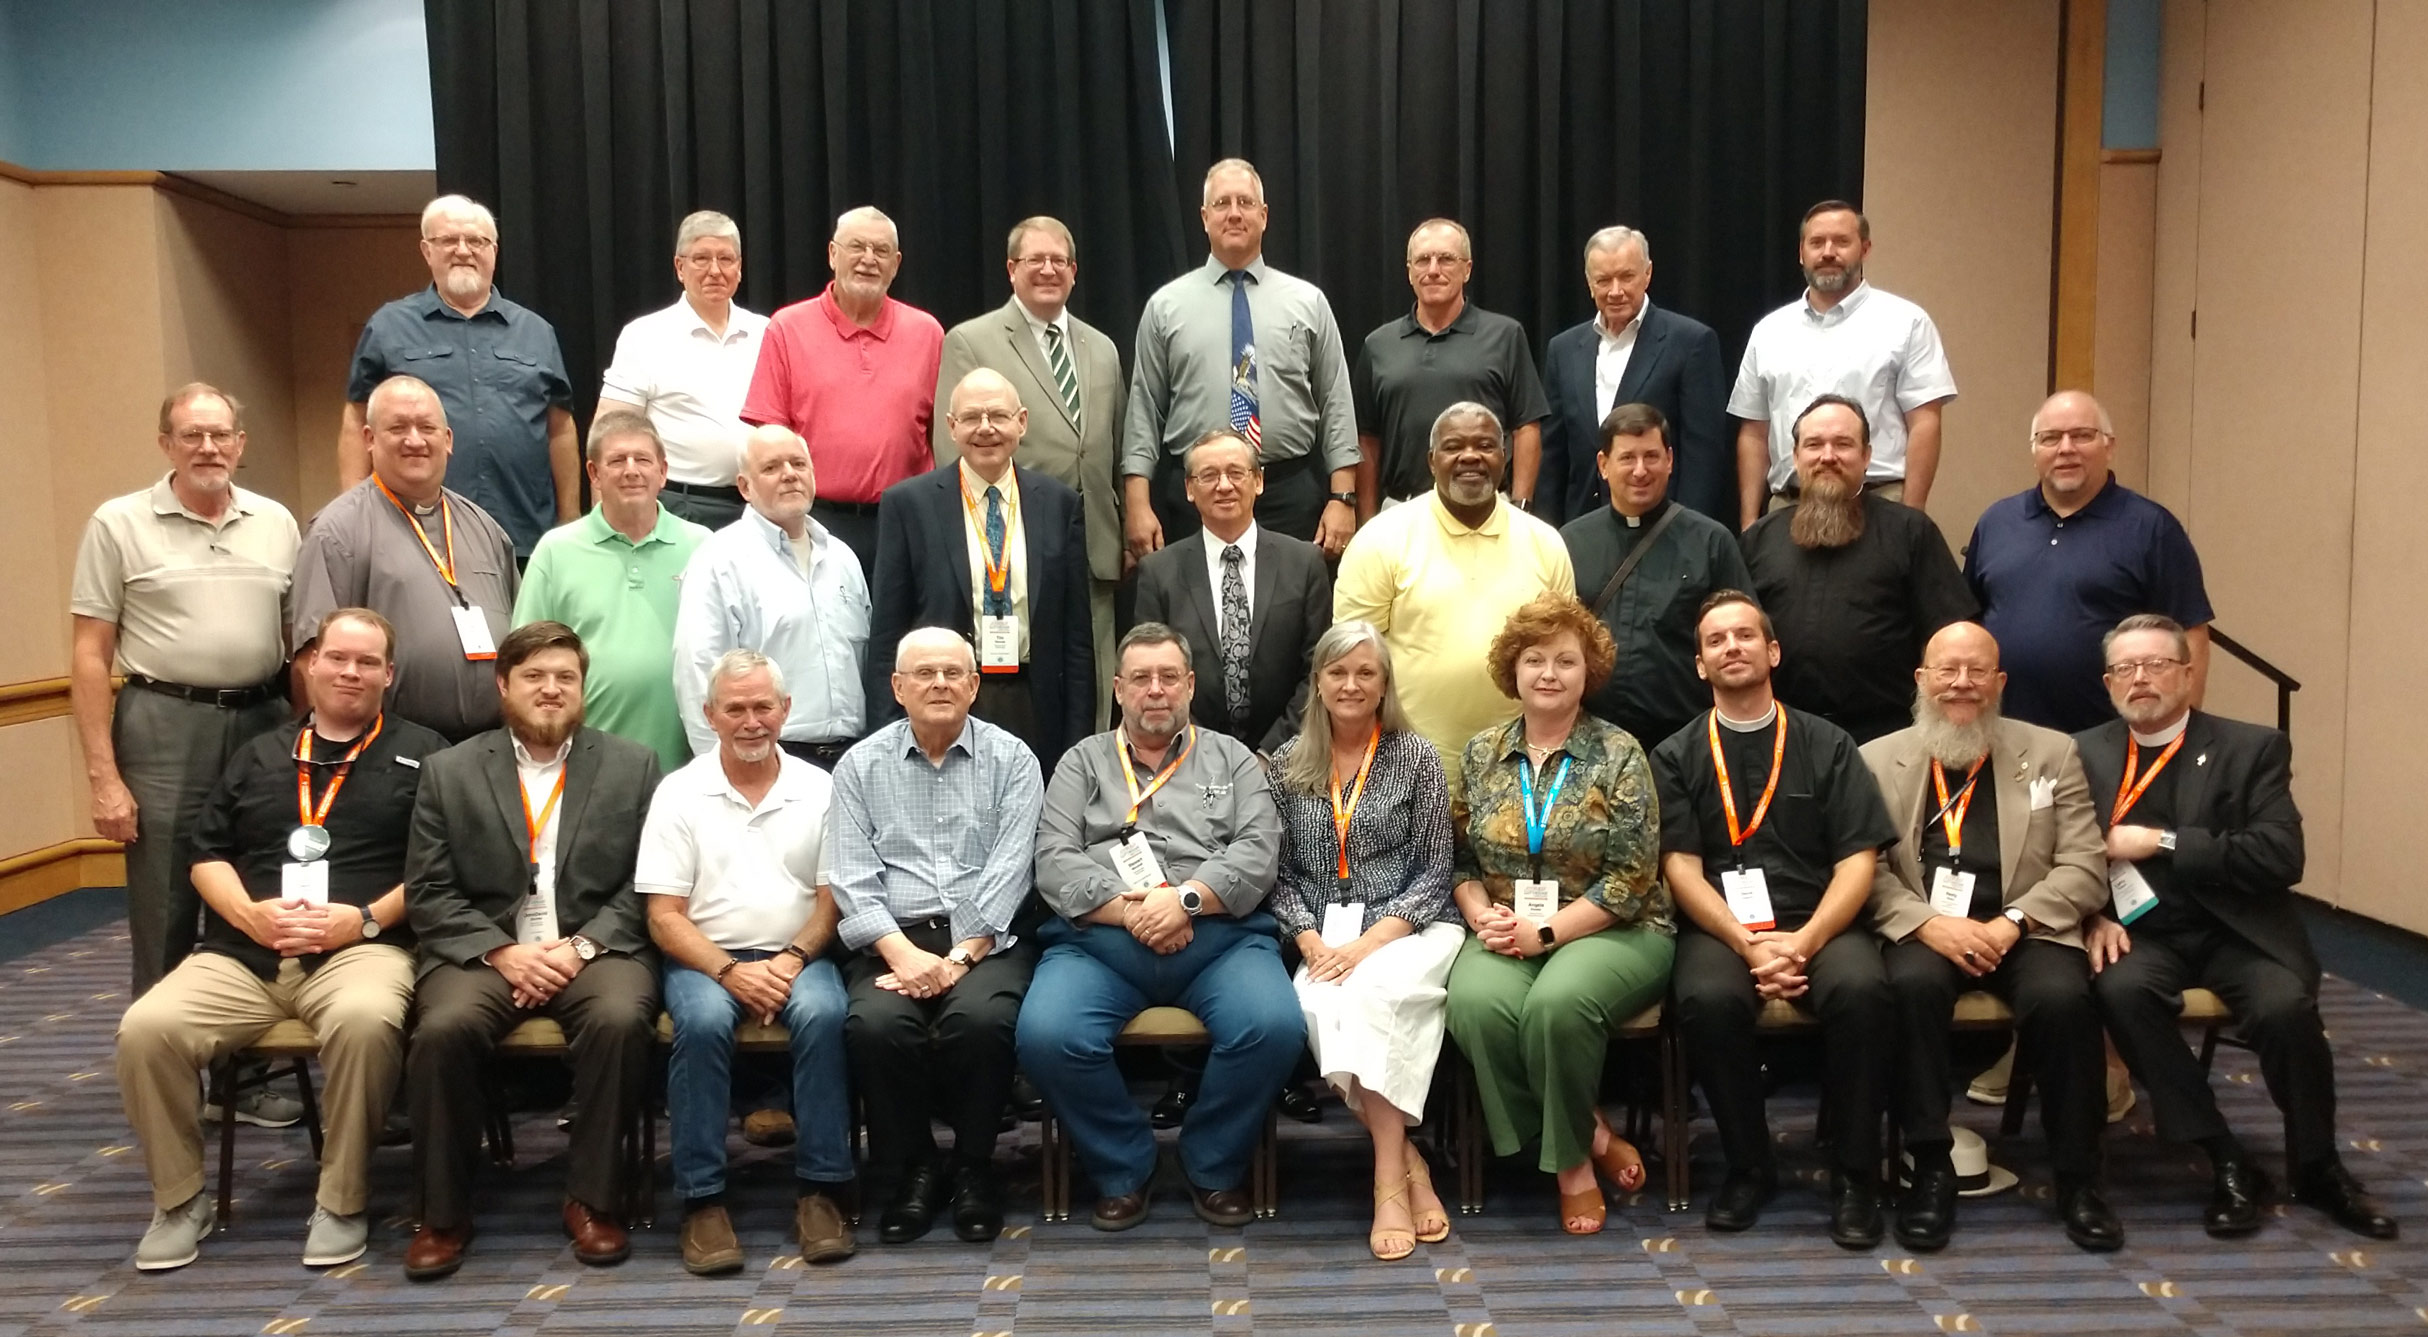 Mid-South District delegates serving at 2019 LCMS convention